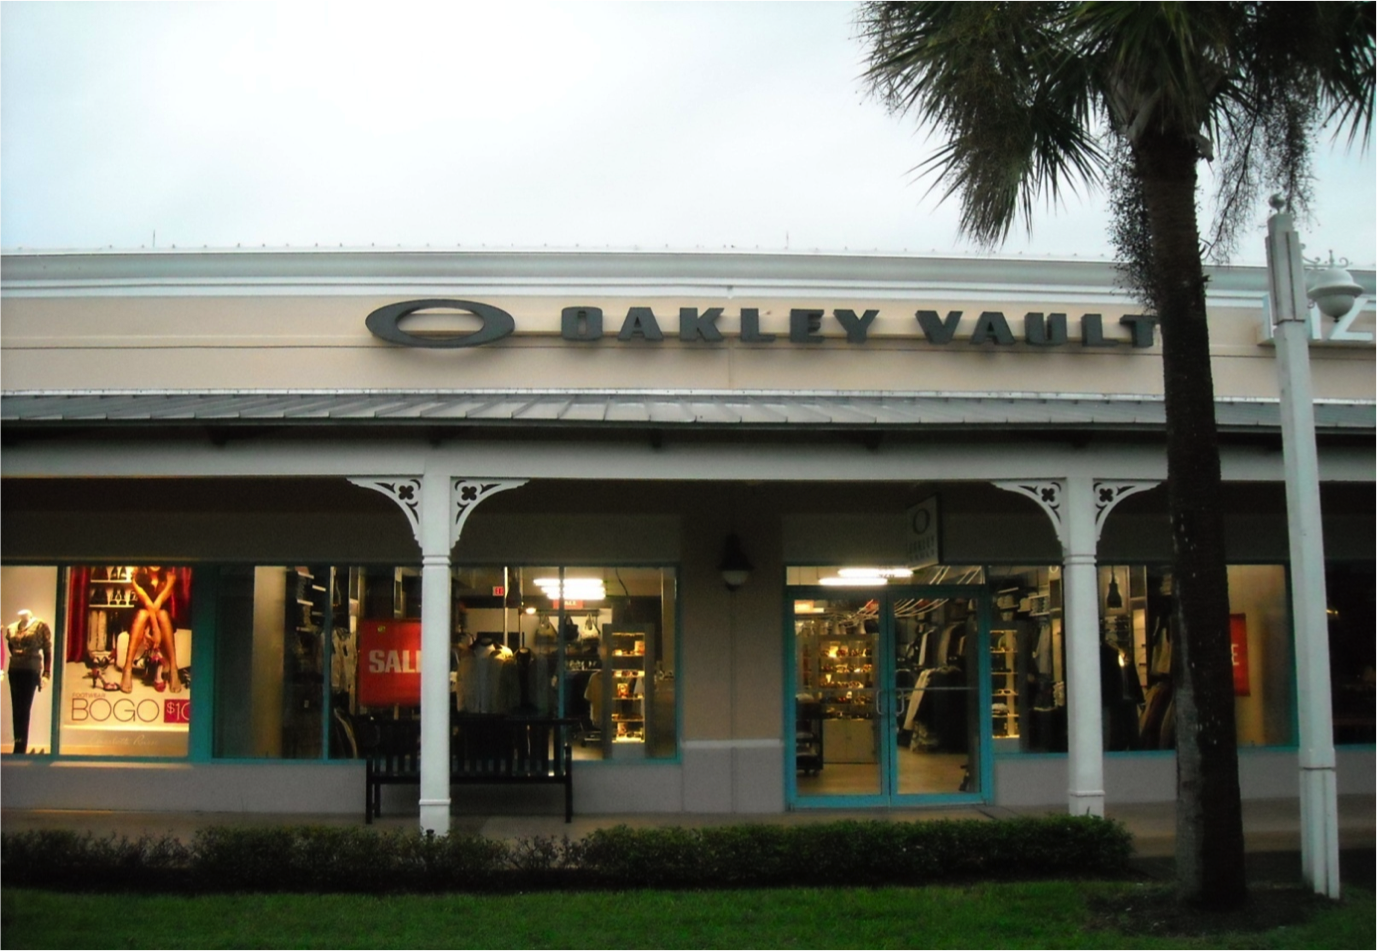 Finish Line, Ellenton. 4 likes · 17 were here. If you're searching for one of the best shoe stores in Ellenton, FL, look no further. Finish Line.